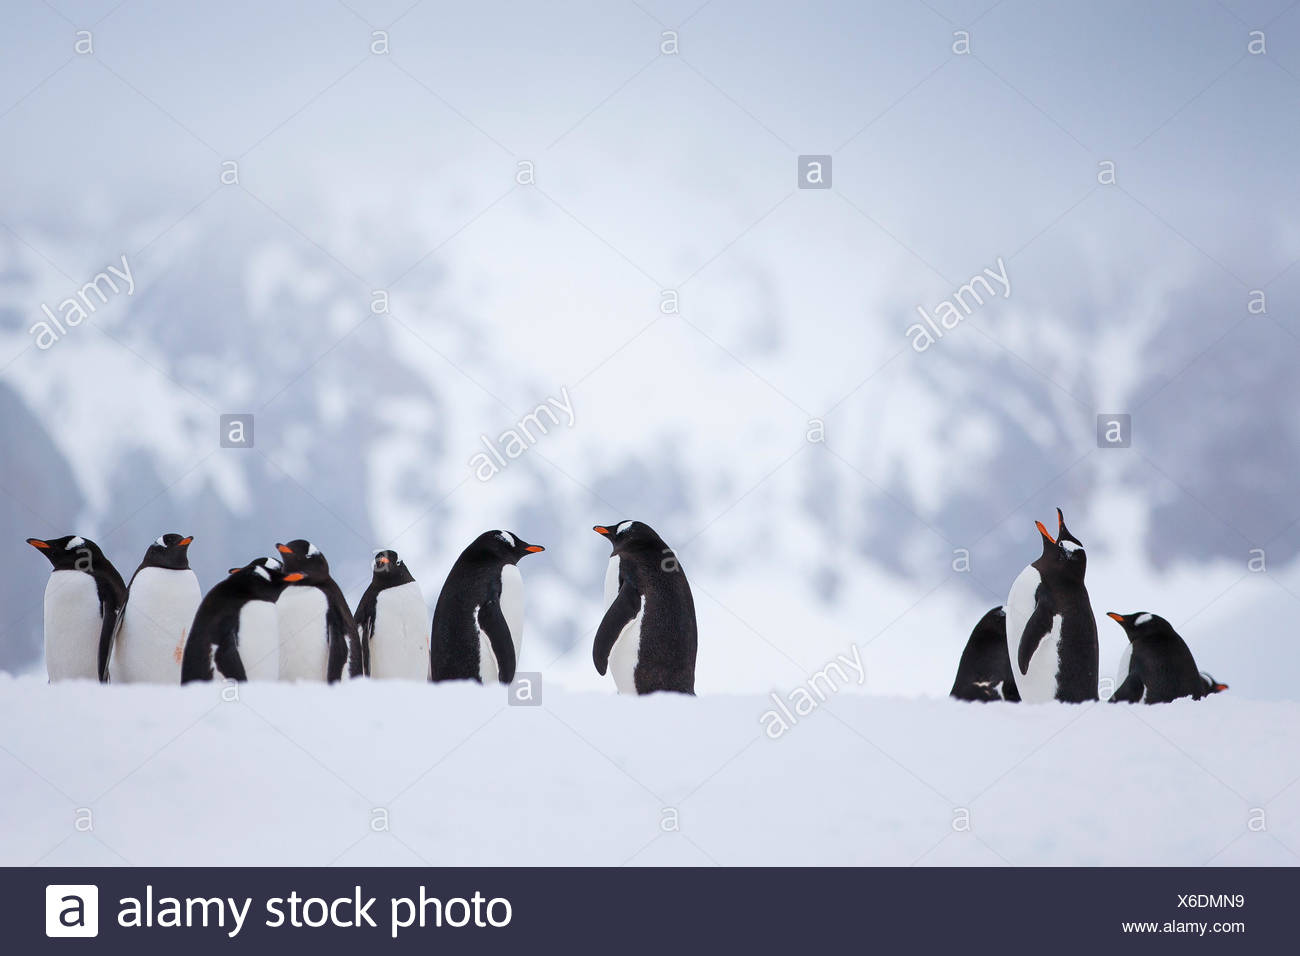 A colony of gentoo penguins in Antarctica. - Stock Image